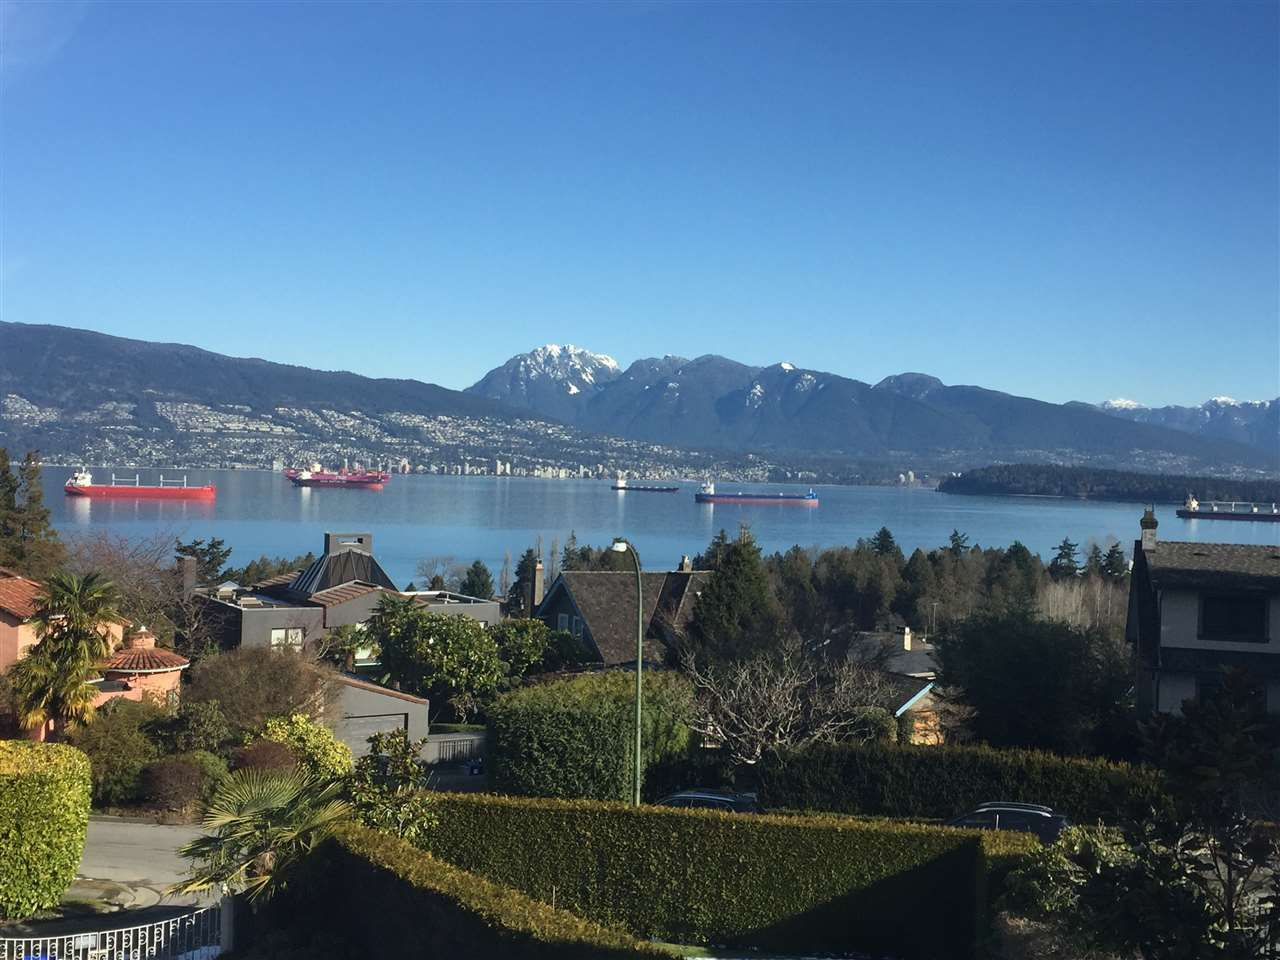 """Main Photo: 4541 W 3RD Avenue in Vancouver: Point Grey House for sale in """"NORTH OF 4TH WEST POINT GREY"""" (Vancouver West)  : MLS®# R2352886"""